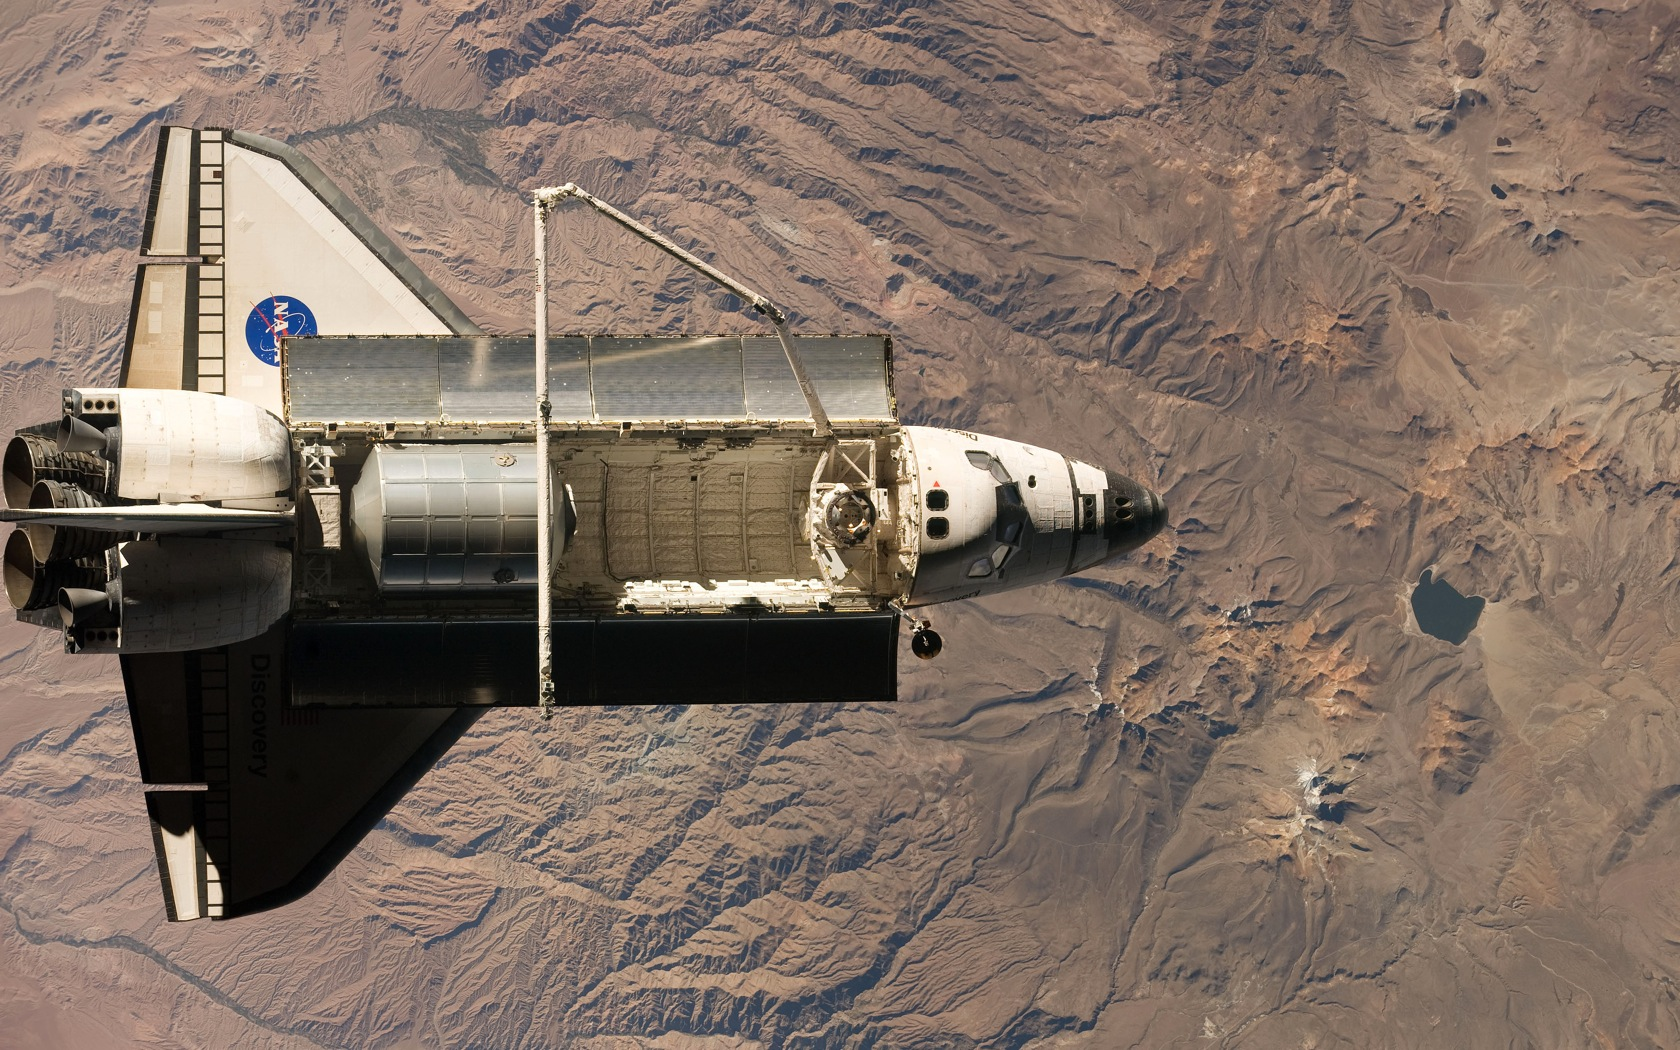 space shuttle vehicles - photo #16